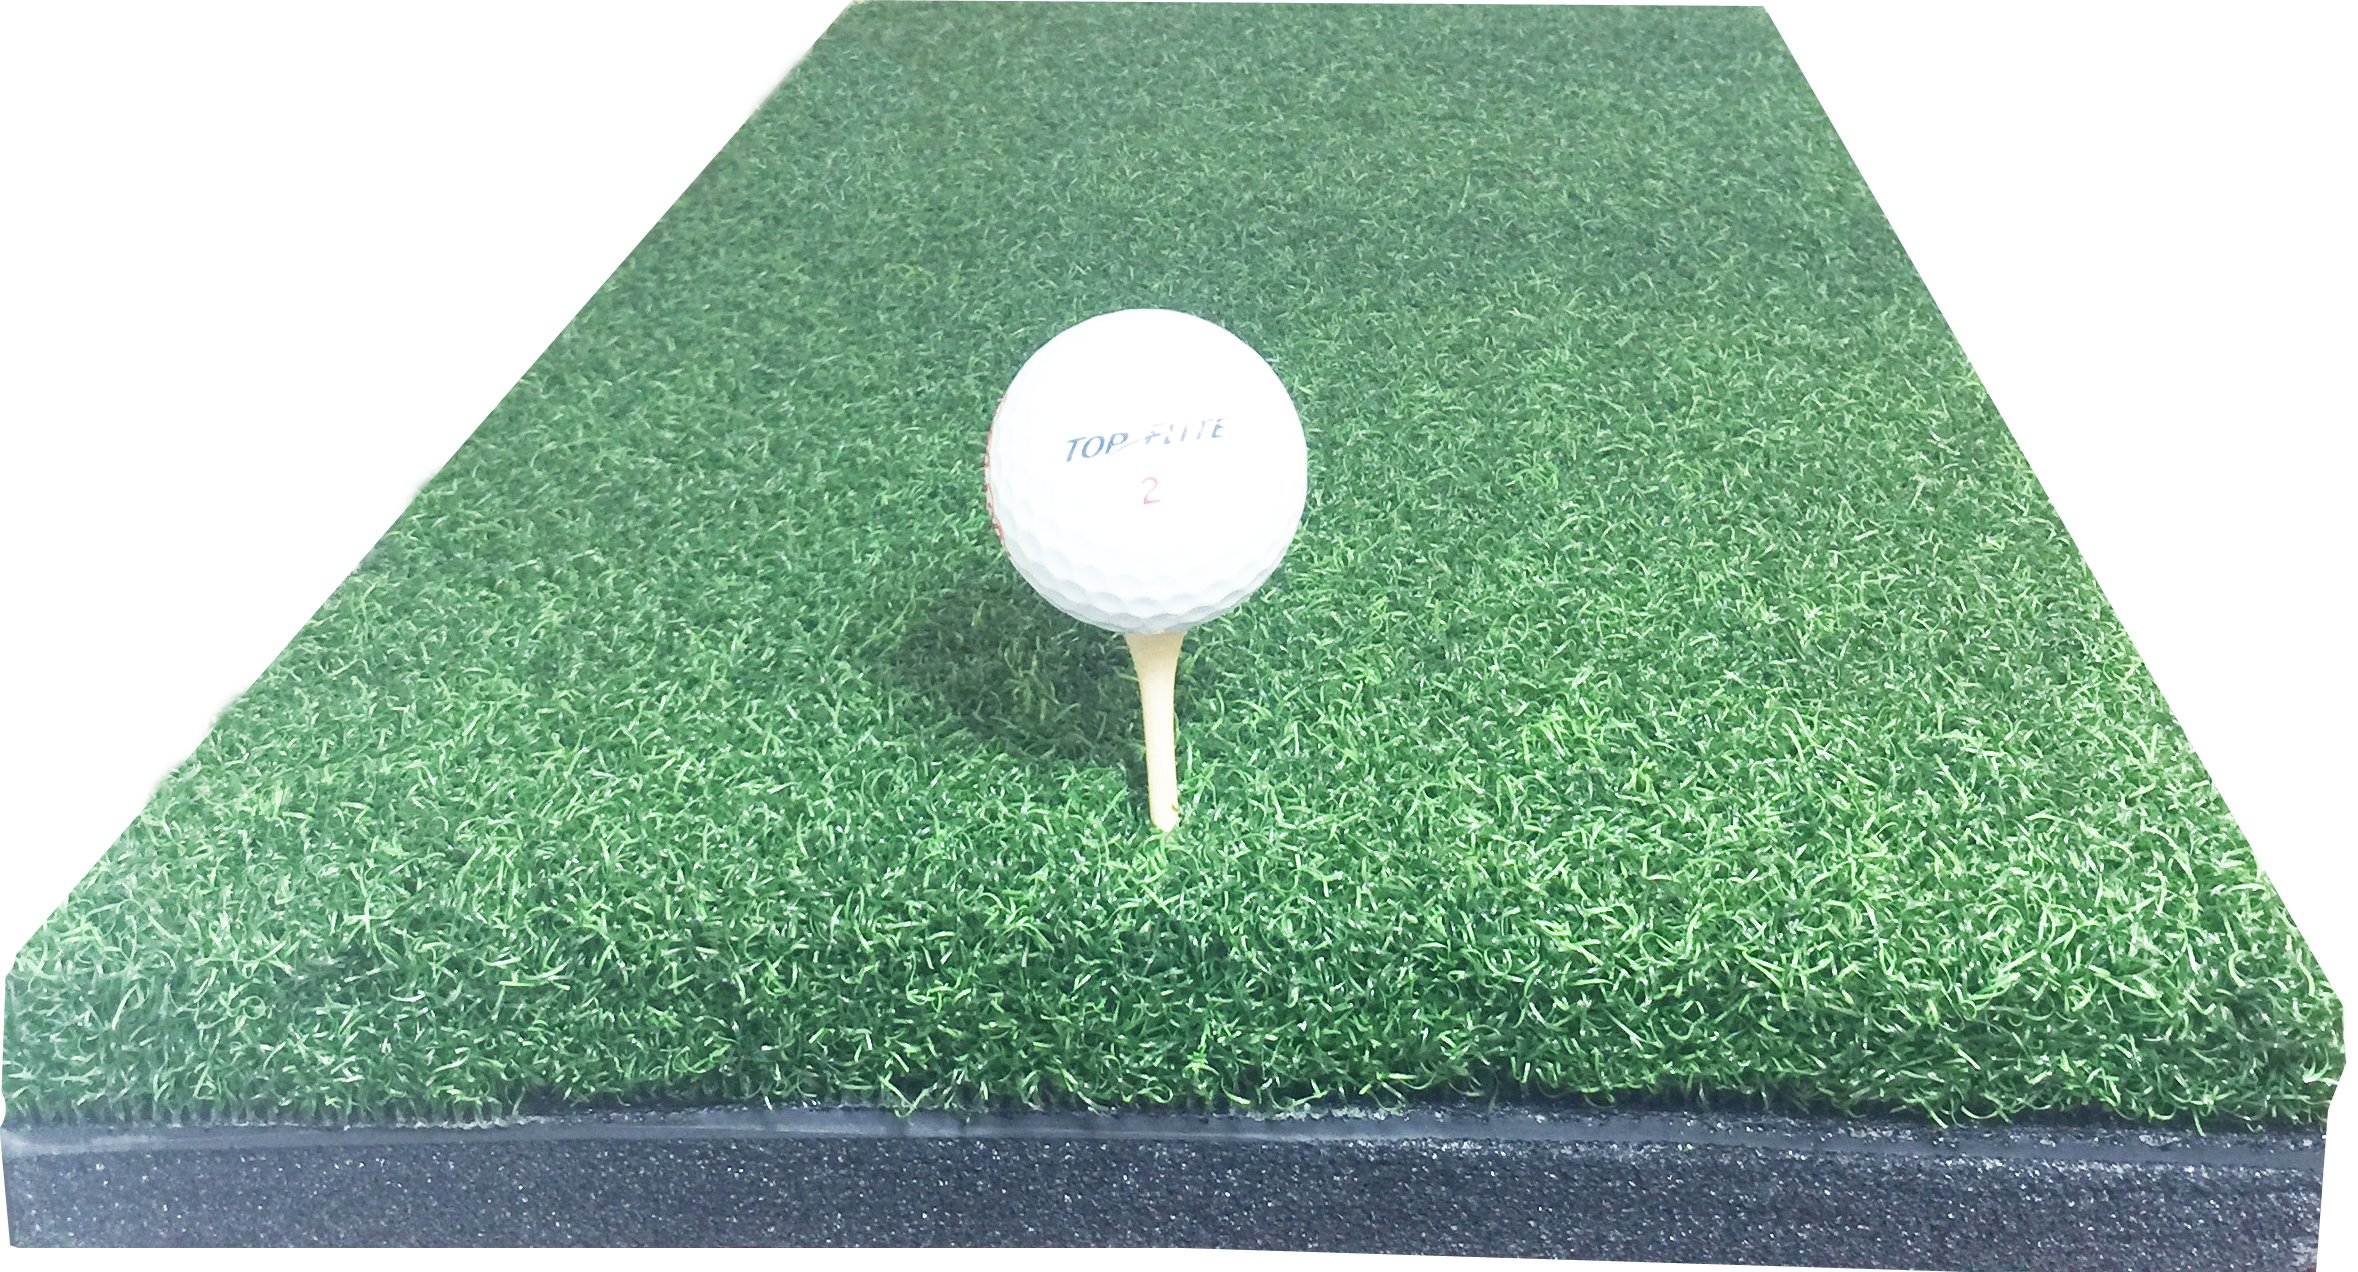 10'' x 24'' Golf Chipping Driving Range Practice Hitting Mat Holds A Wooden Tee